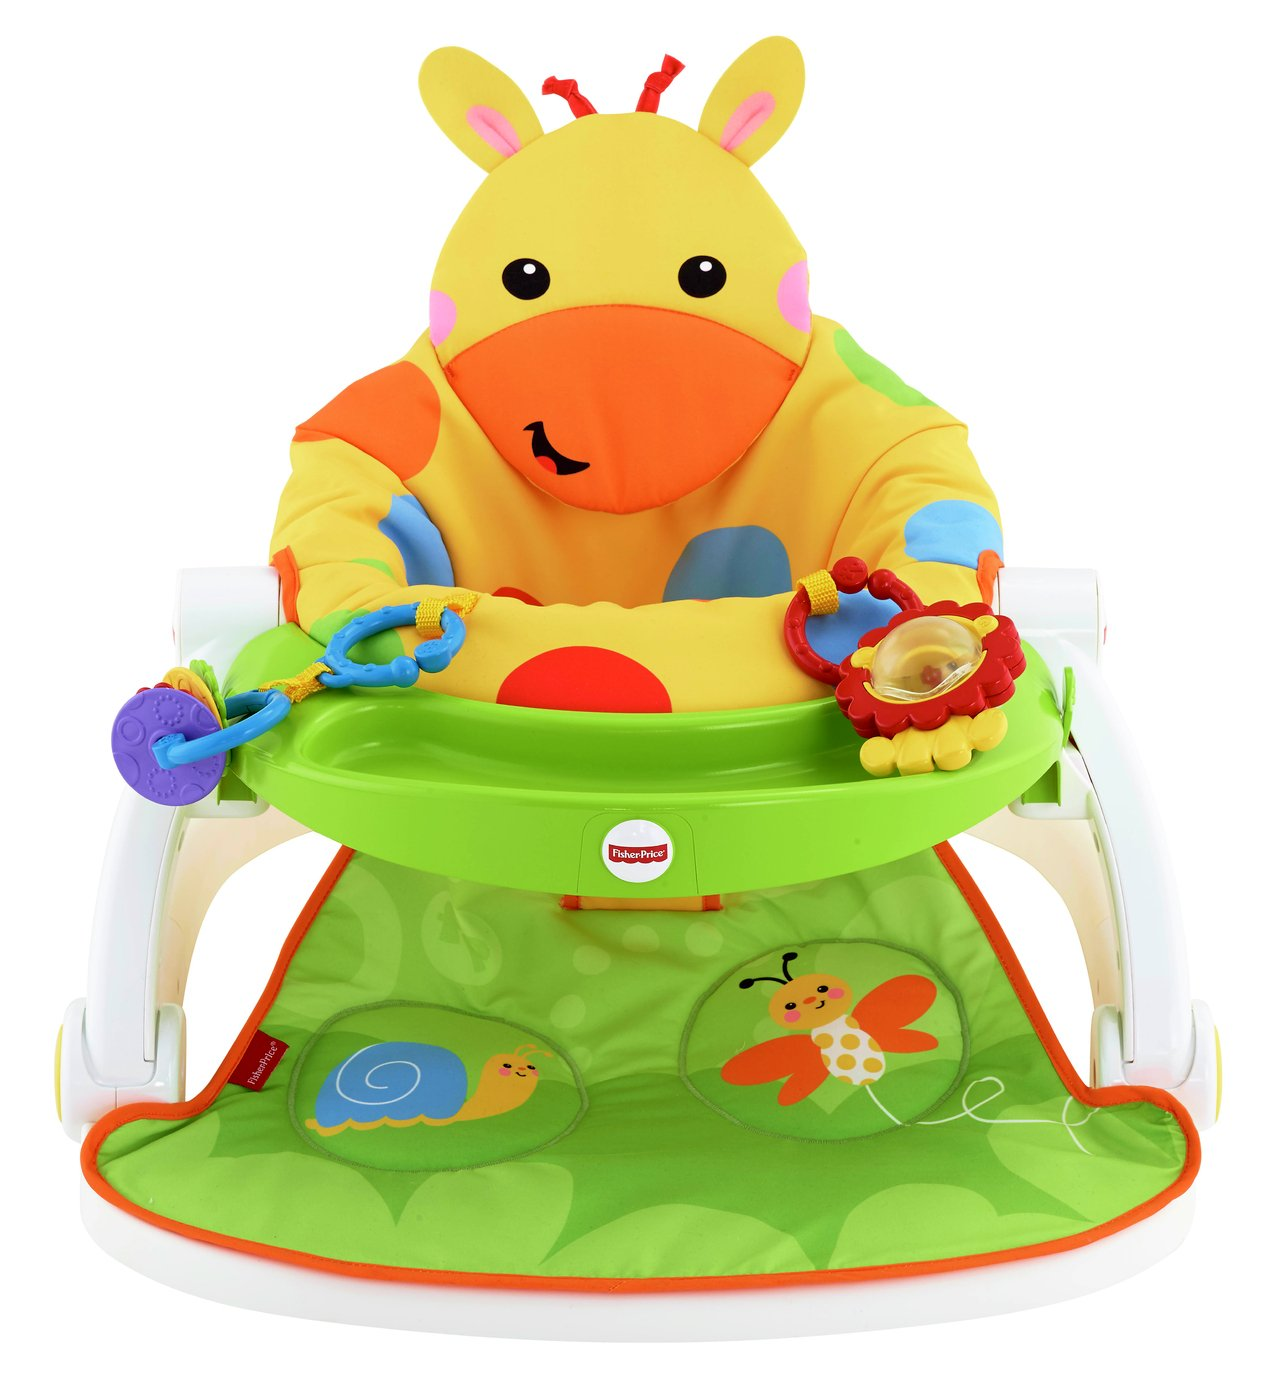 Image of Giraffe Sit-Me-Up Feeding - Booster Seat with Tray